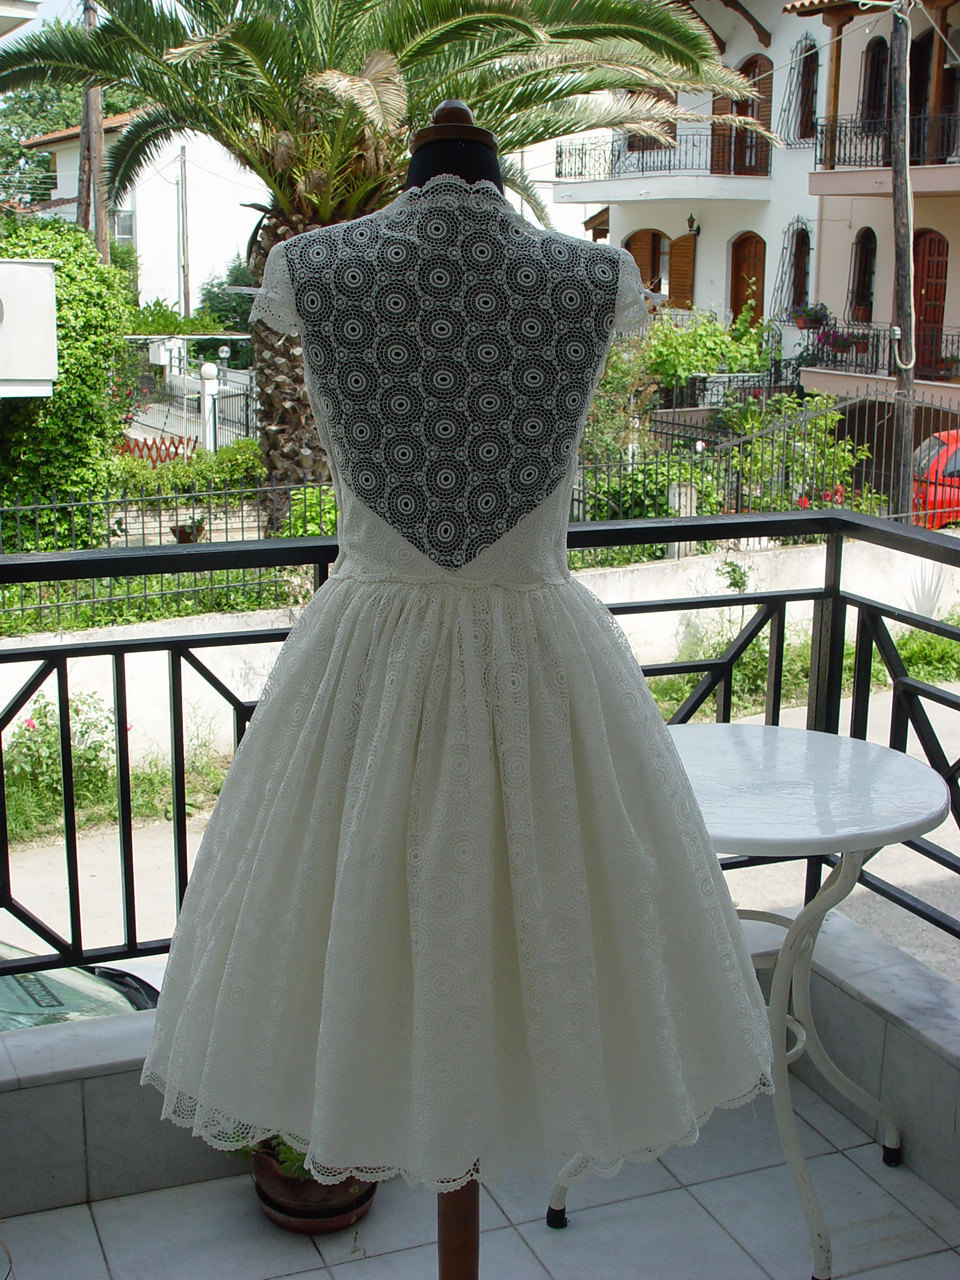 Lovely-lace-lwds-for-the-brides-wedding-reception-look-cap-sleeves-3.full